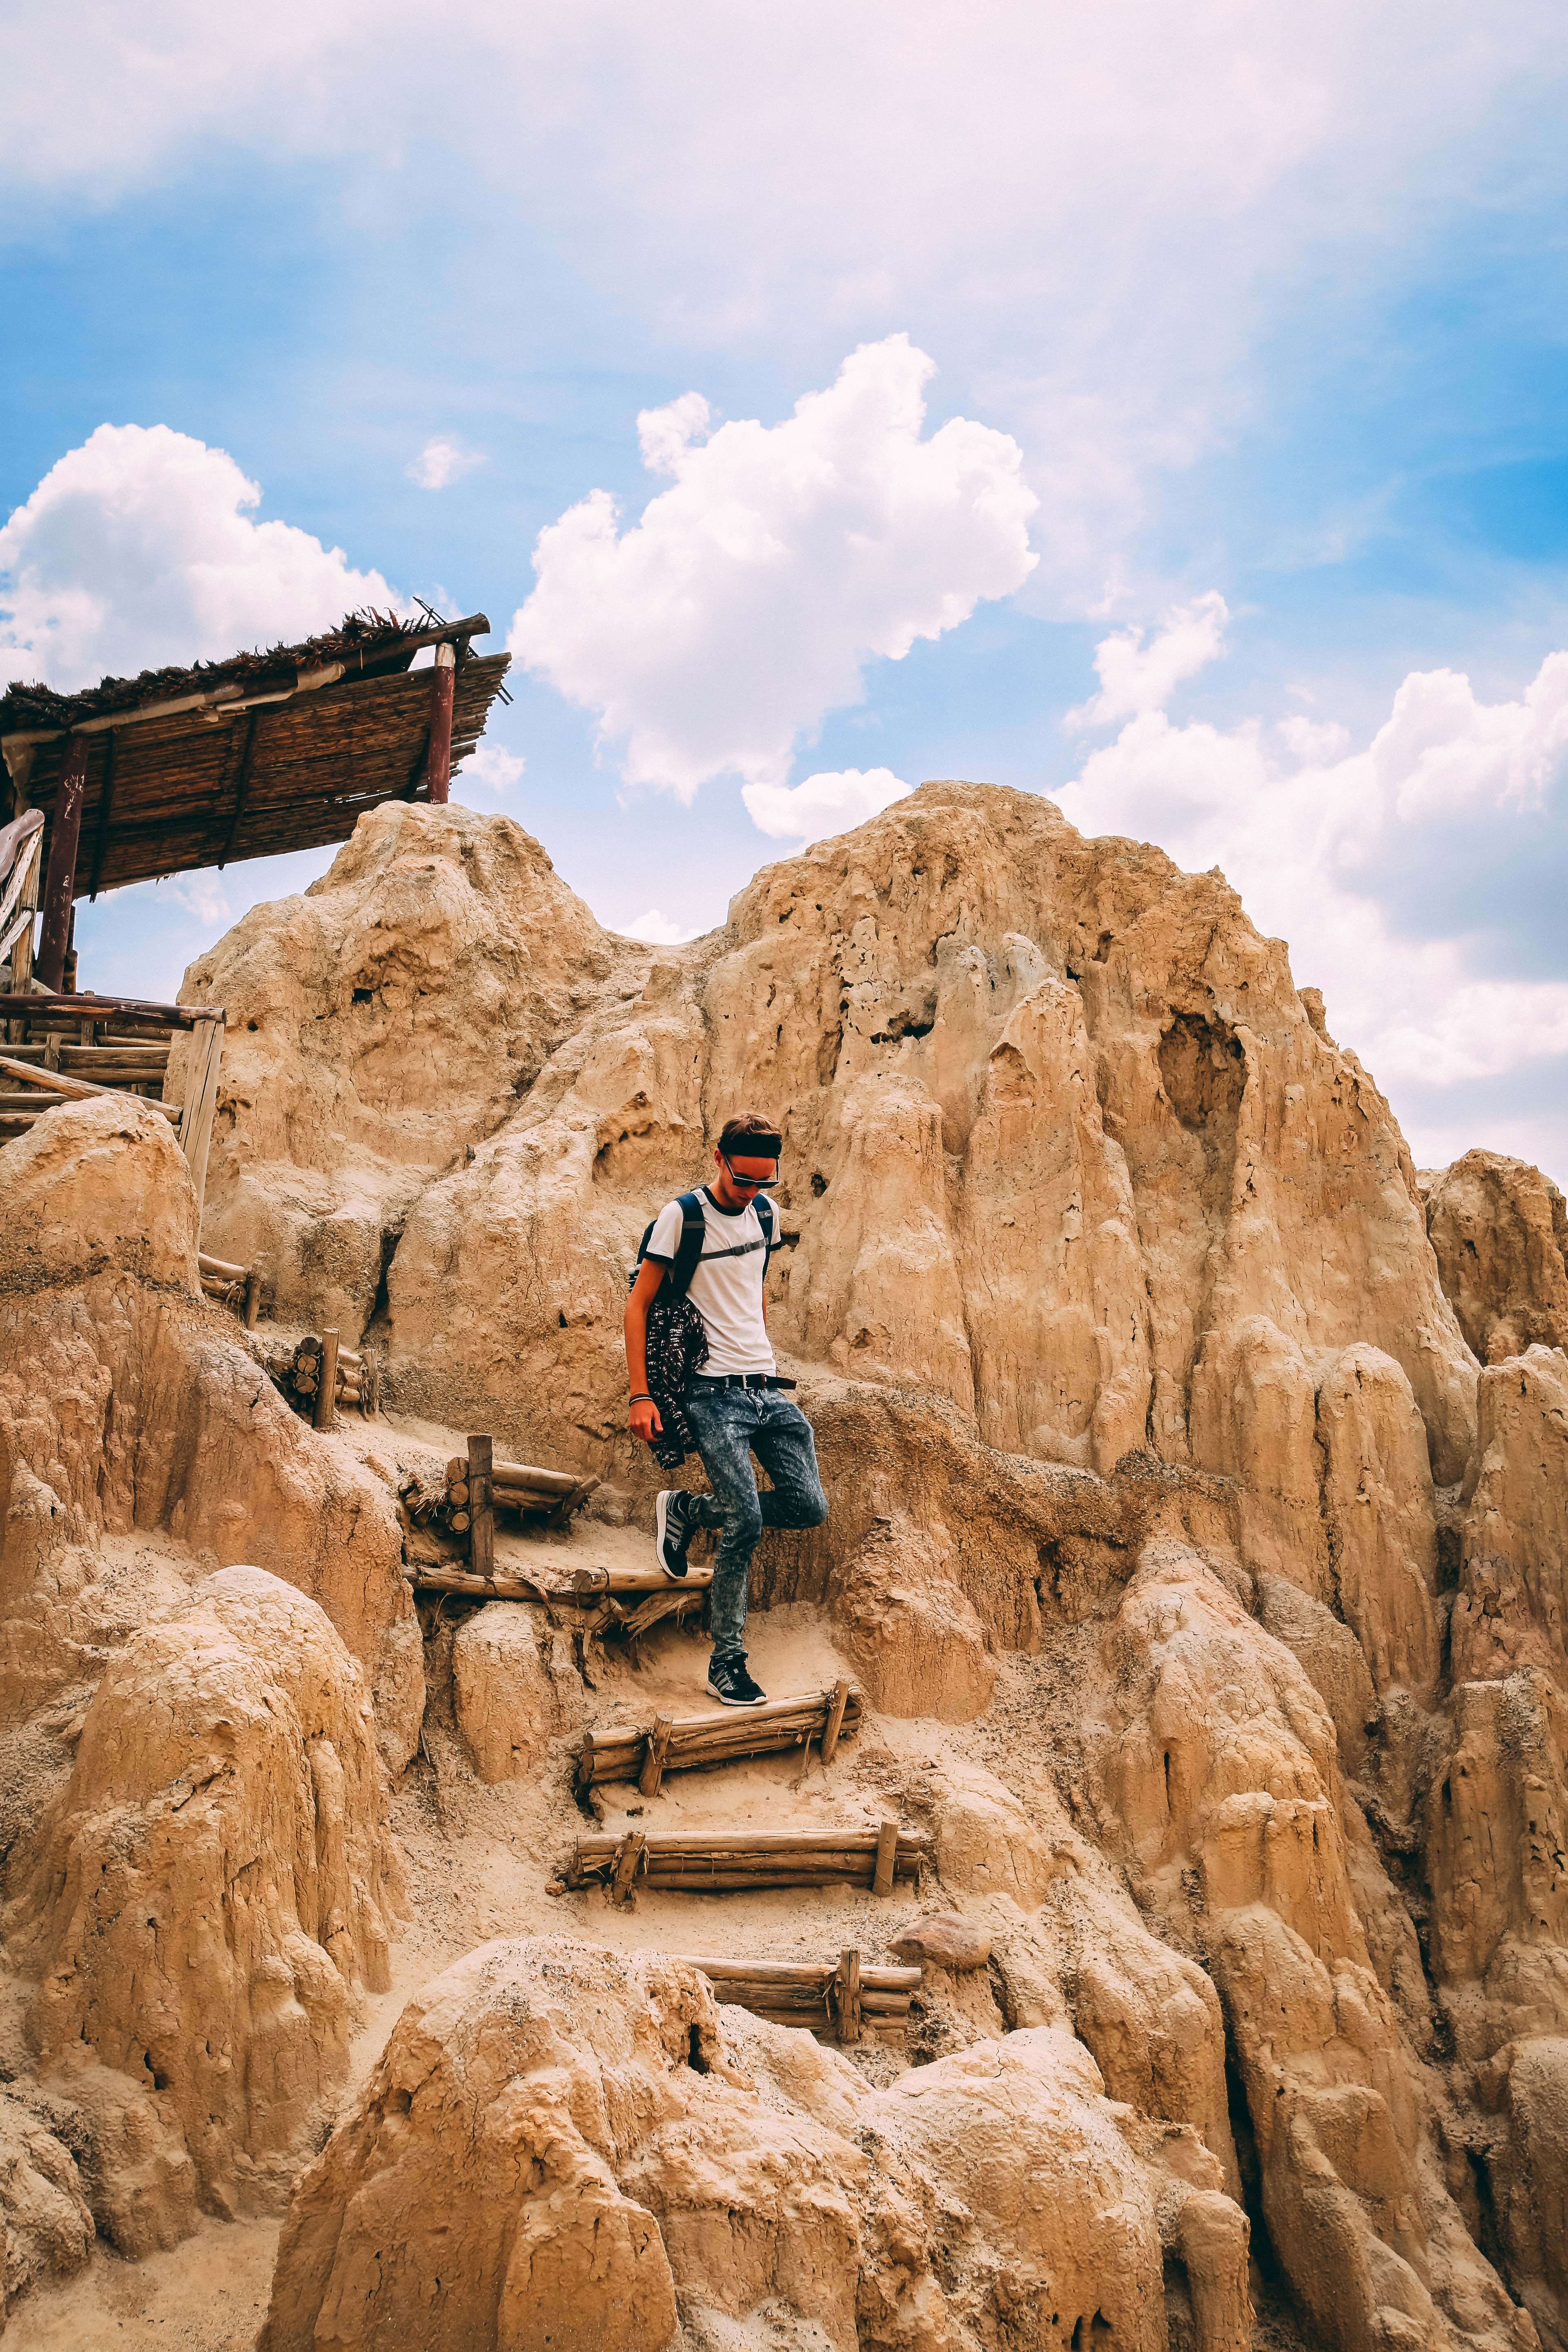 man walking down stairs of rock formation mountain during daytime